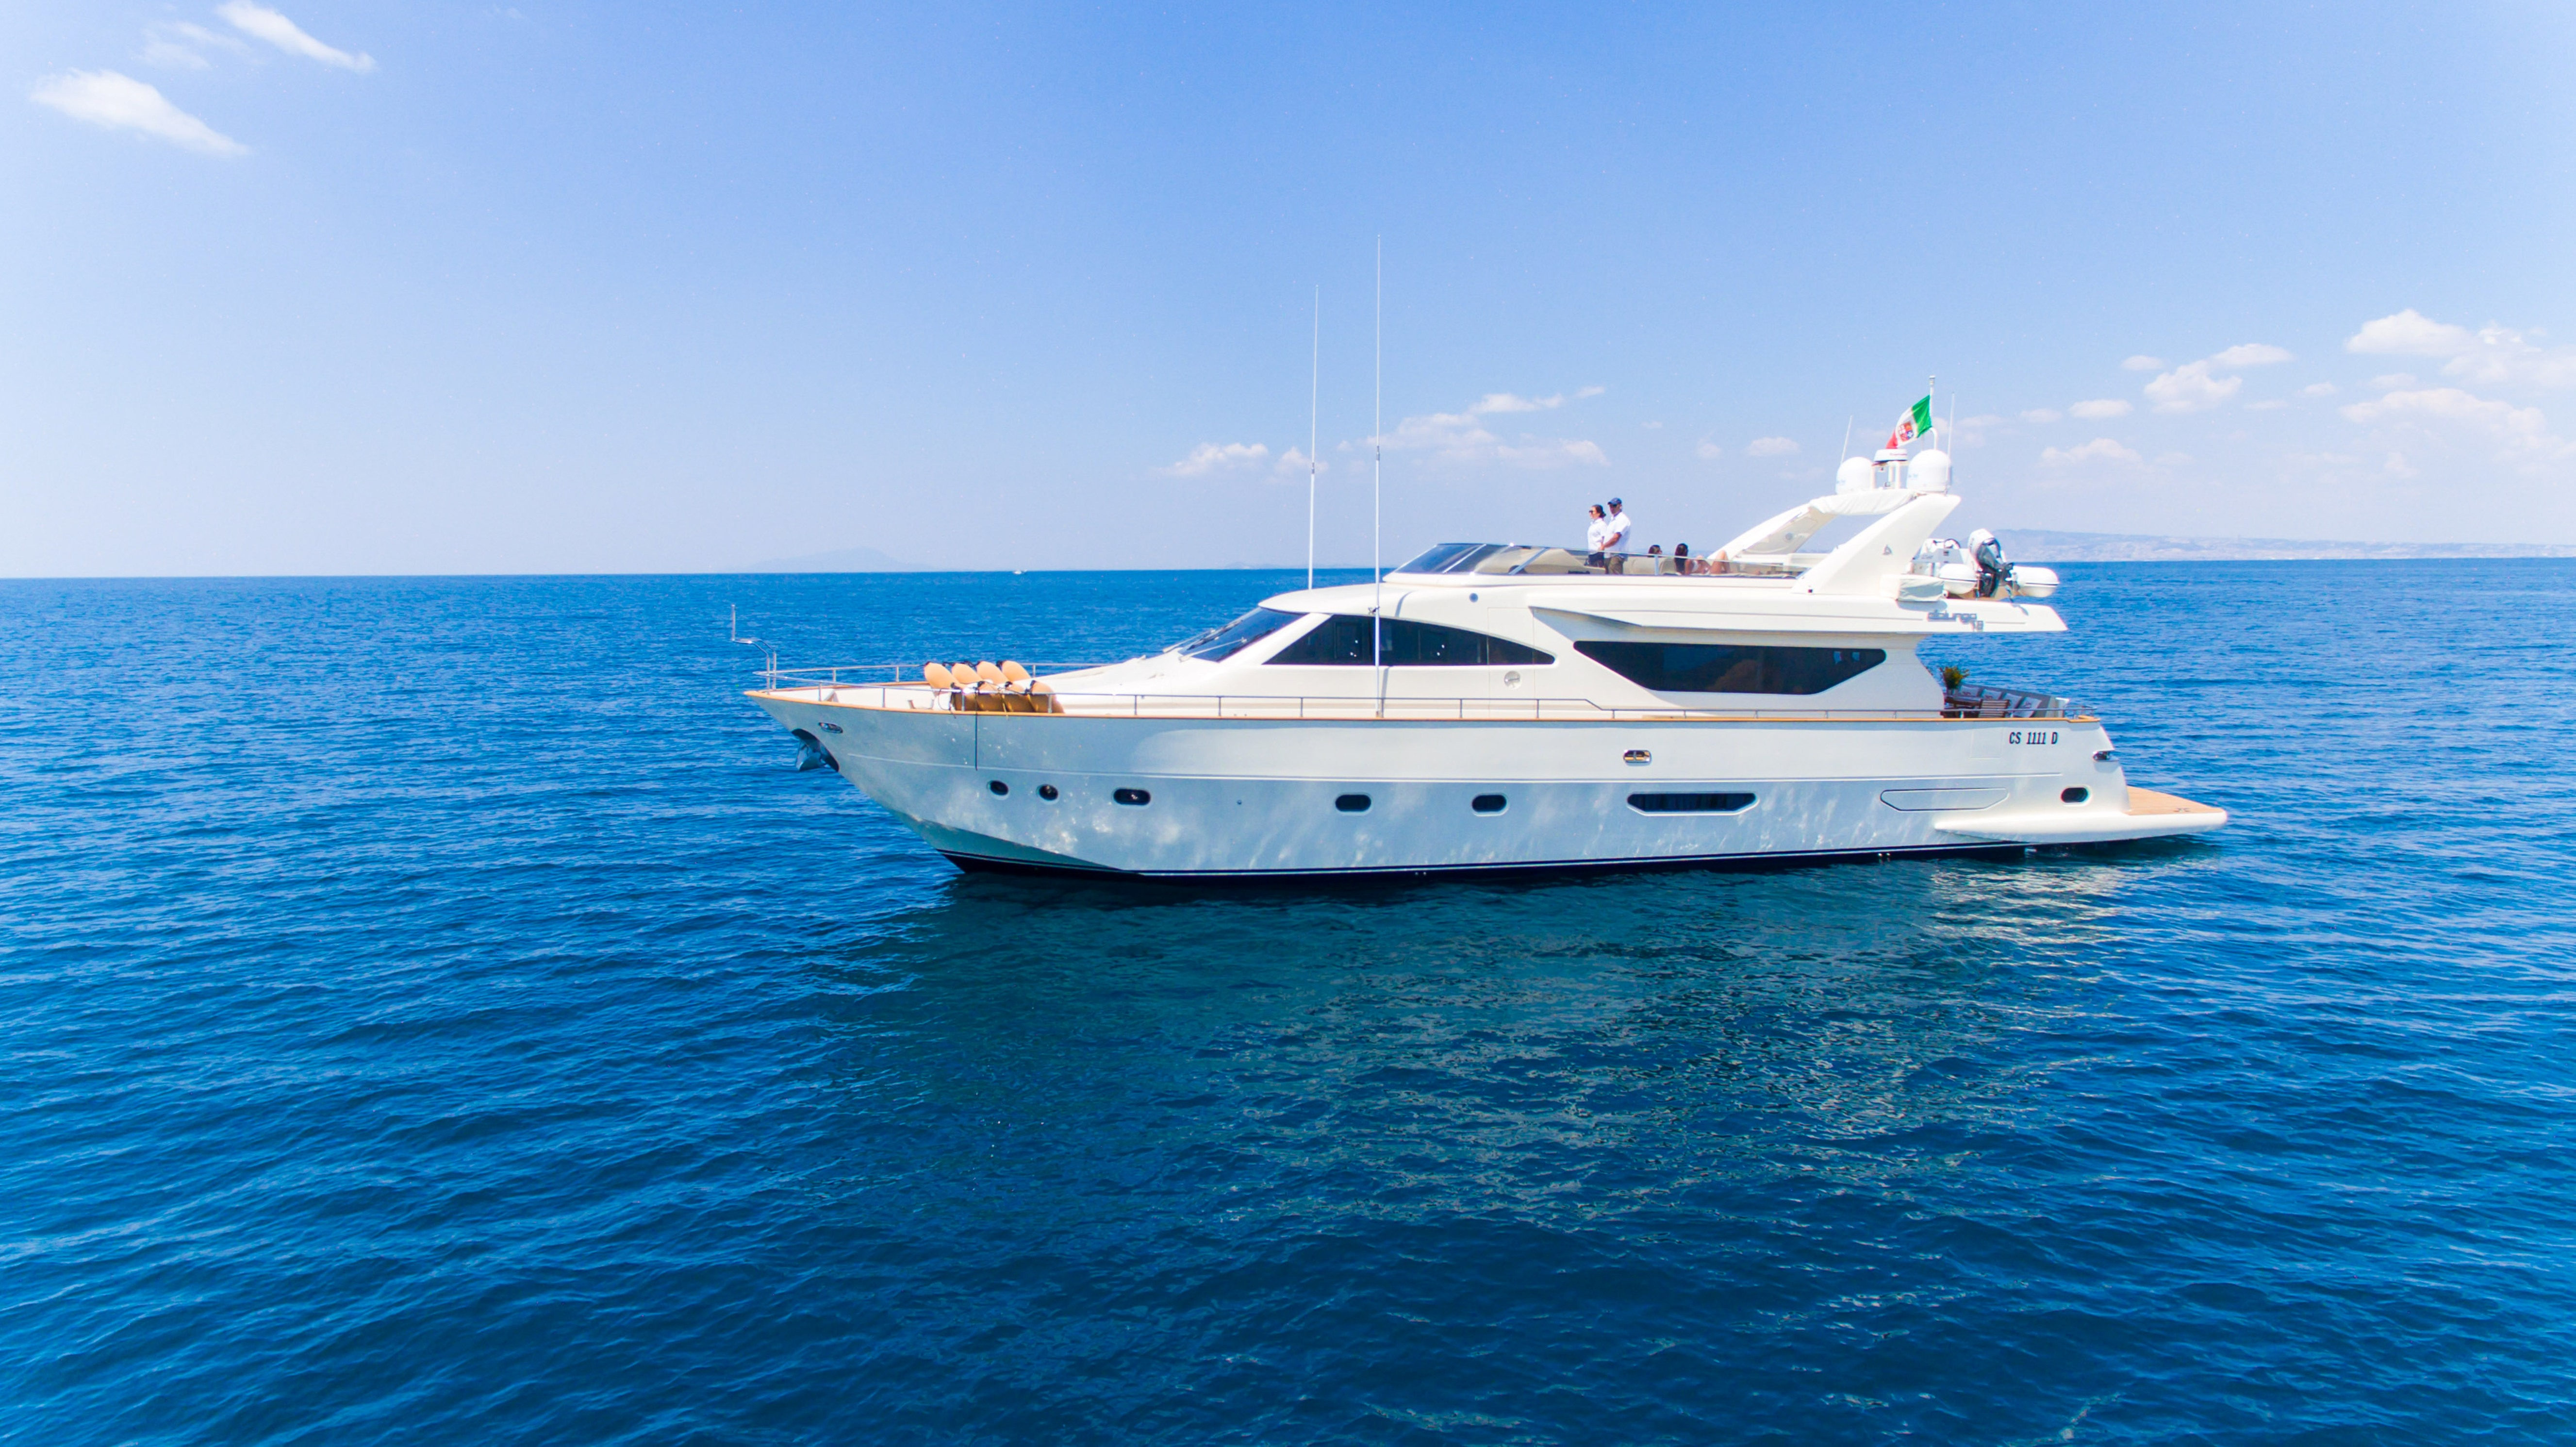 DISCOVER WHY A YACHT CHARTER HOLIDAY IS THE PERFECT CHOICE THIS SUMMER!